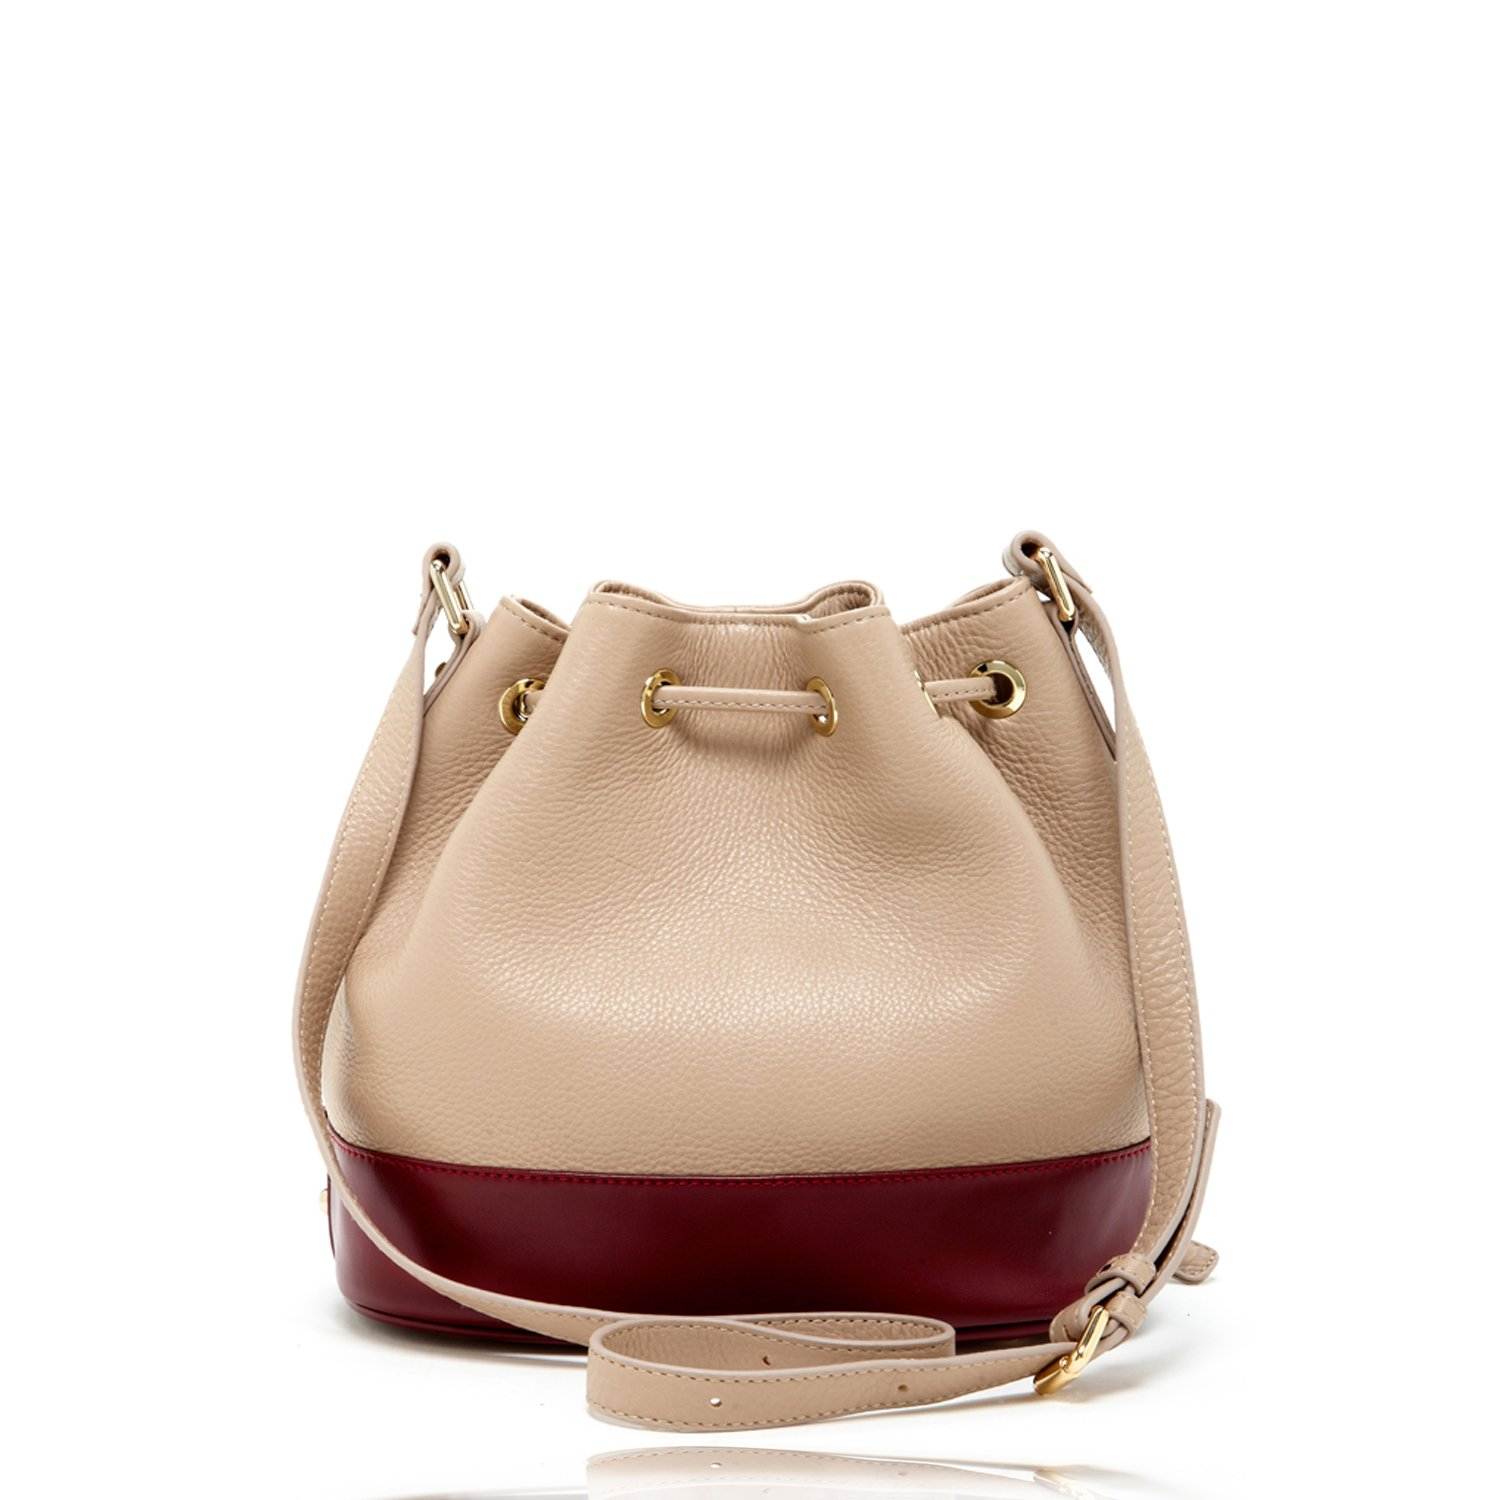 Tan Bucket Purse Beige Leather Crossbody Bags For Women Taupe Crossover  Drawstring Purses and Handbags For Travel Nude Designer Pocketbooks Cream Cross  body ... 2cf1312643e20